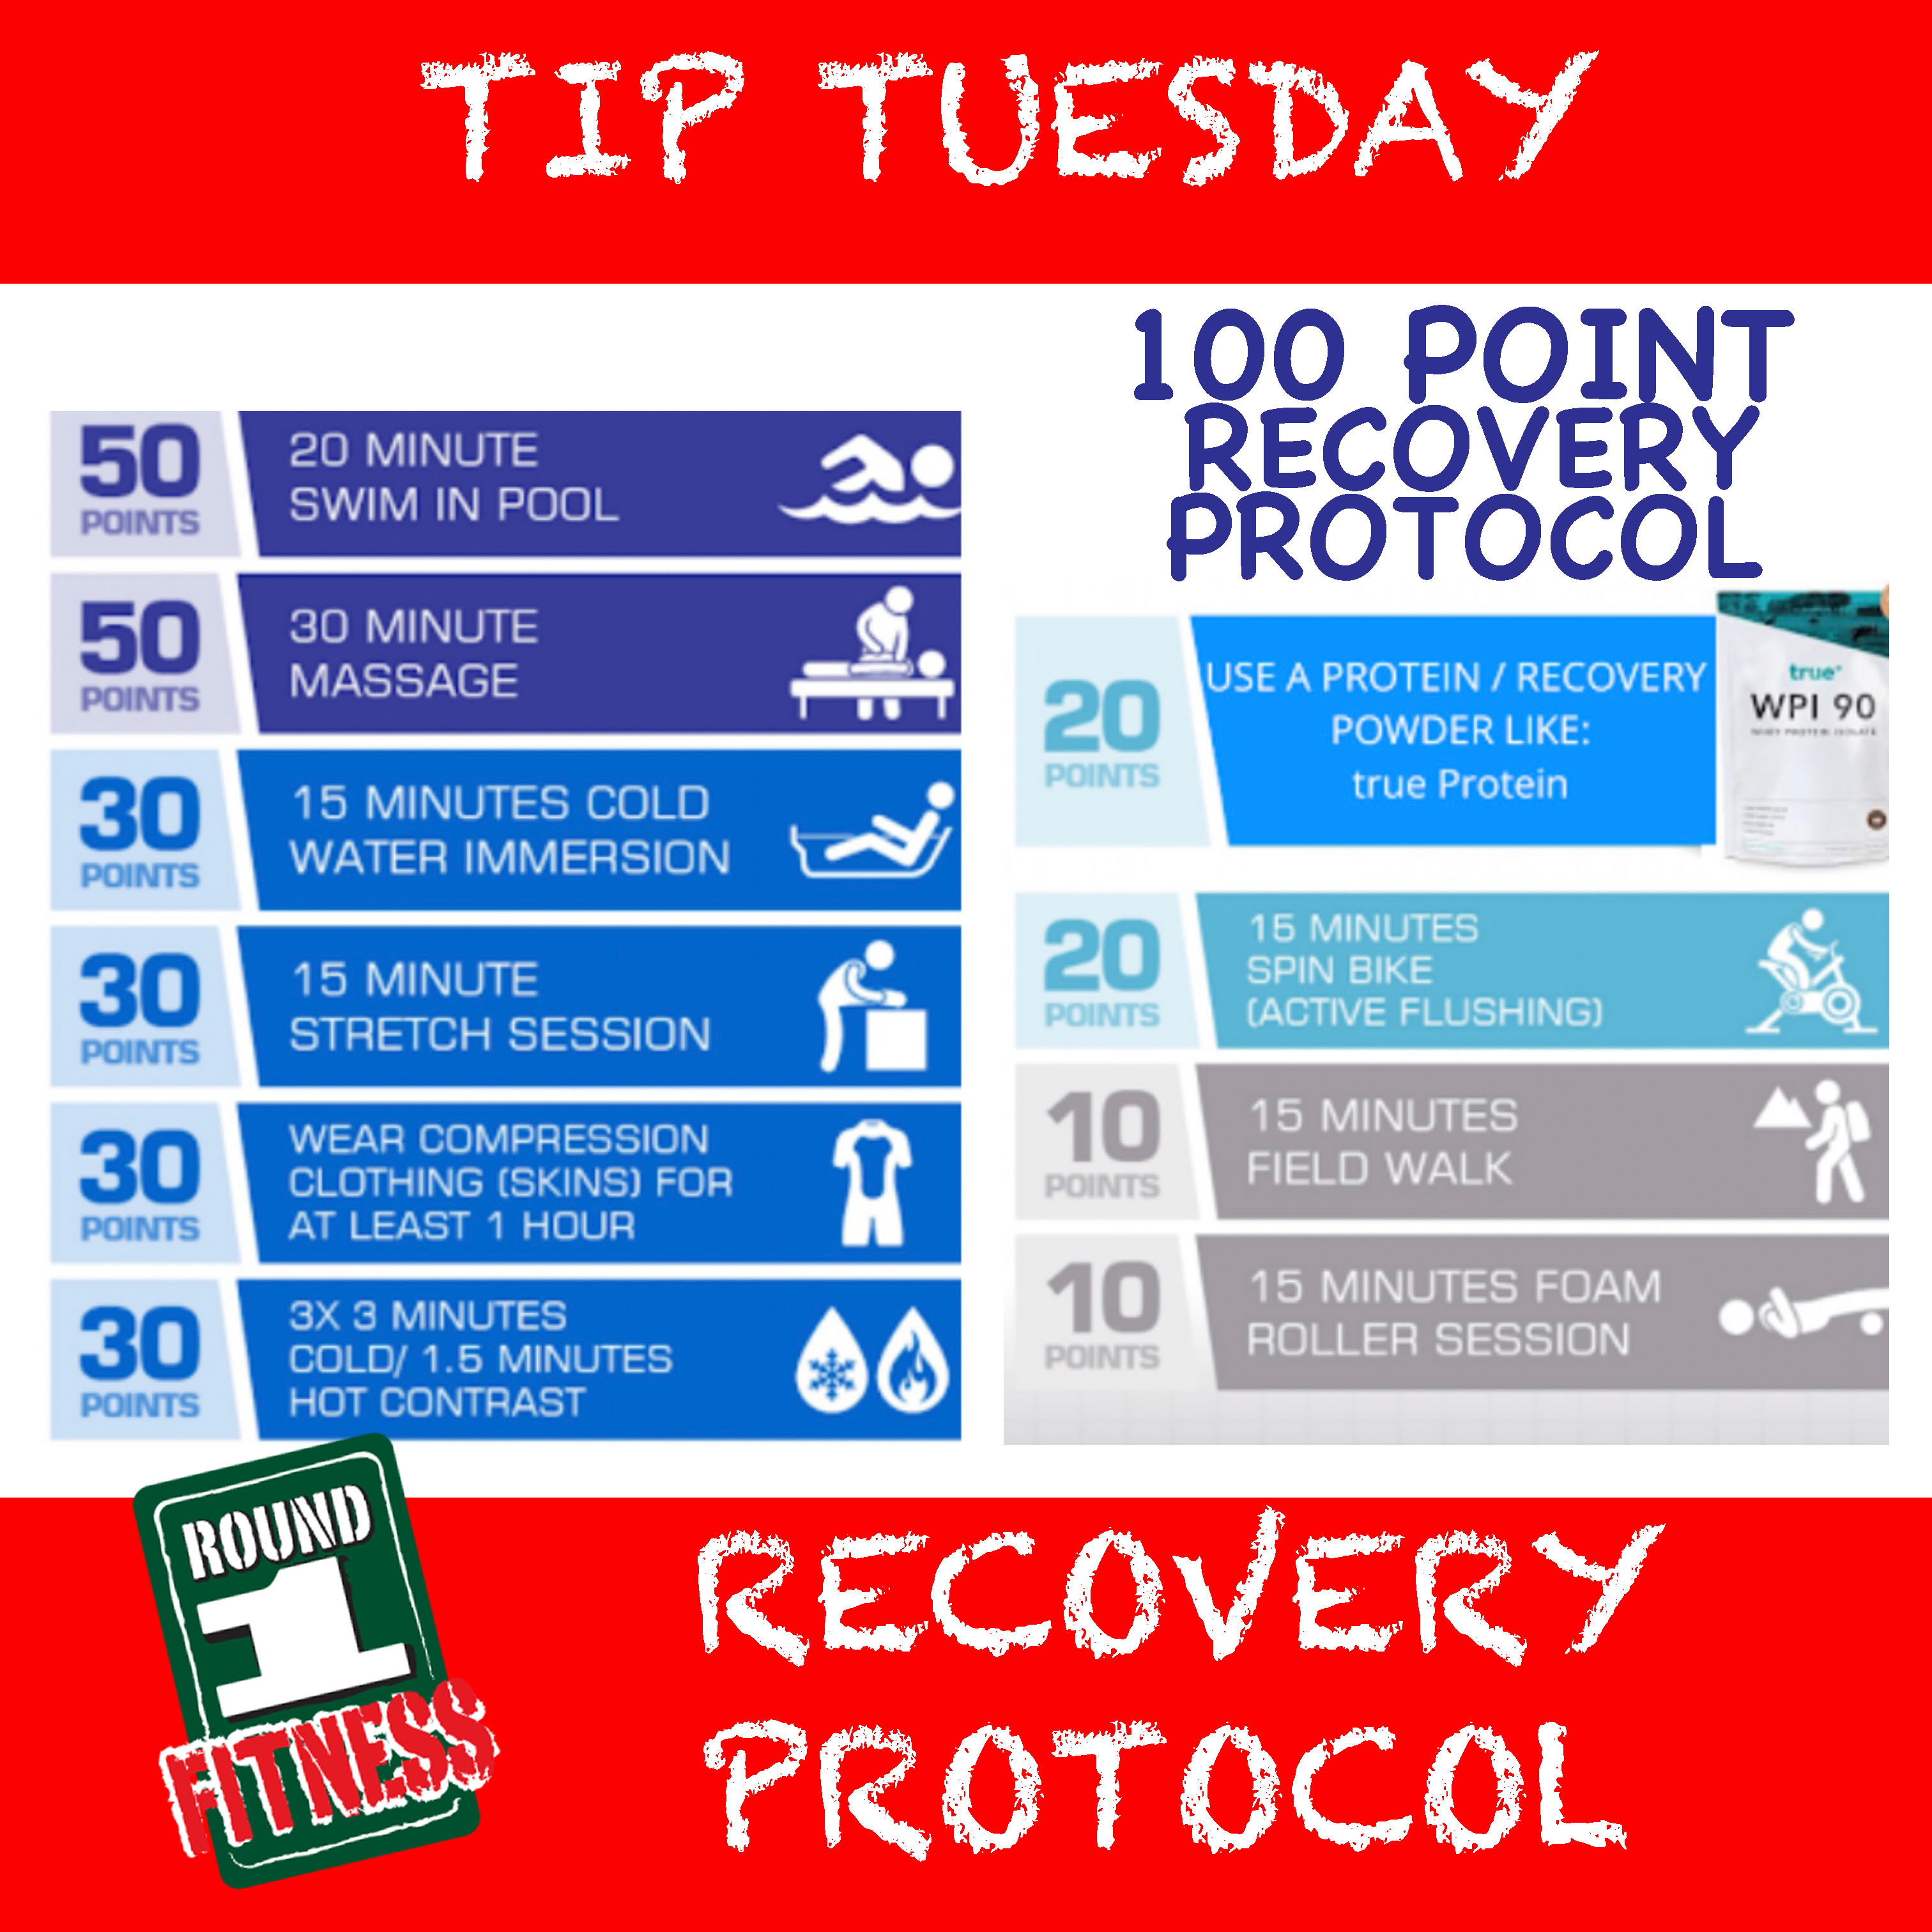 Recovery Protocol Tip!